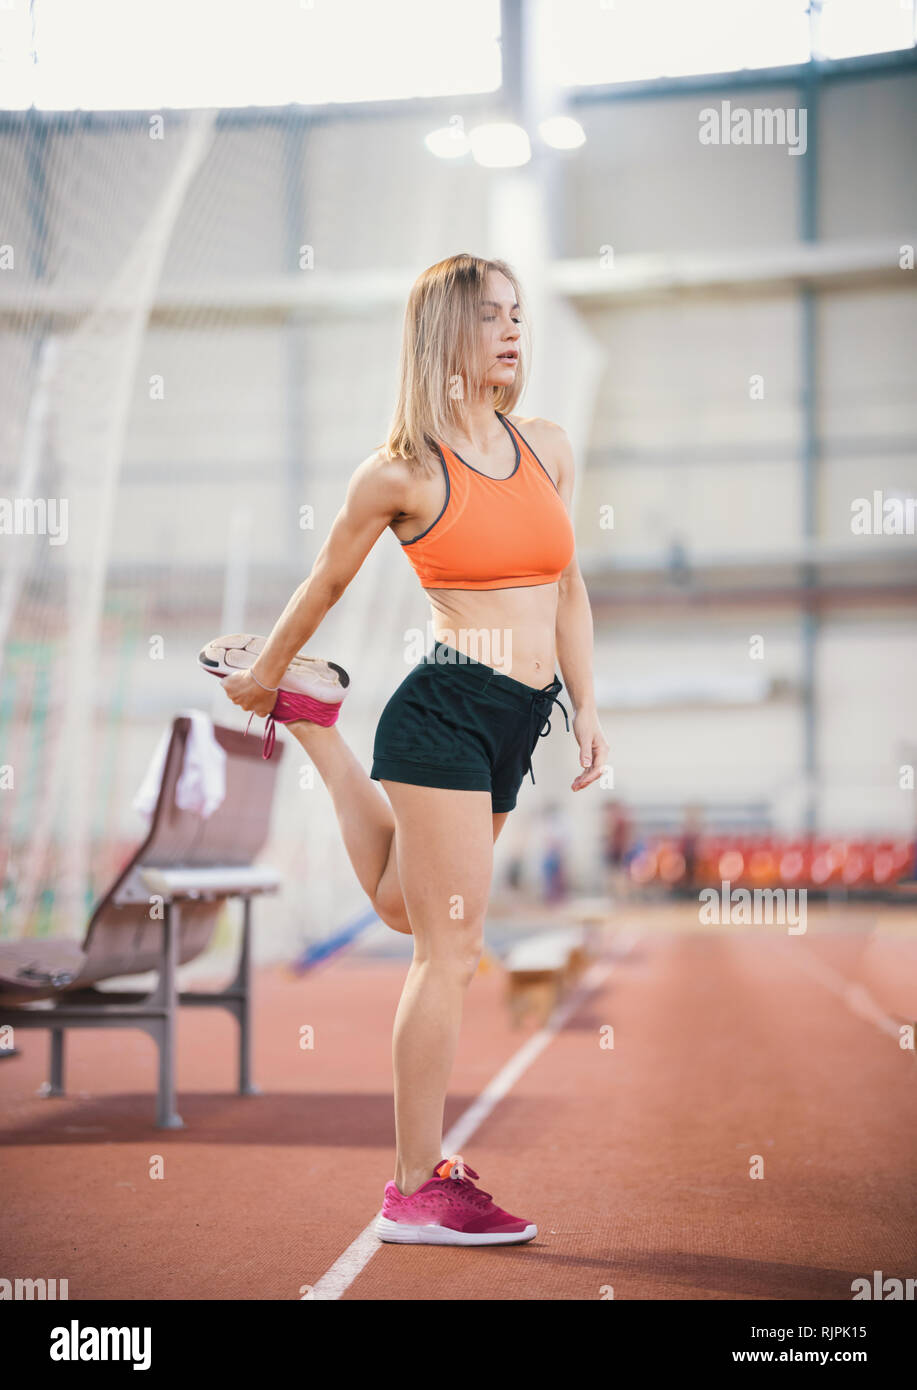 Young Fit Athletic Woman Stretching Her Legs Stock Photo Alamy A picture of andrea osorio. https www alamy com young fit athletic woman stretching her legs image235296465 html